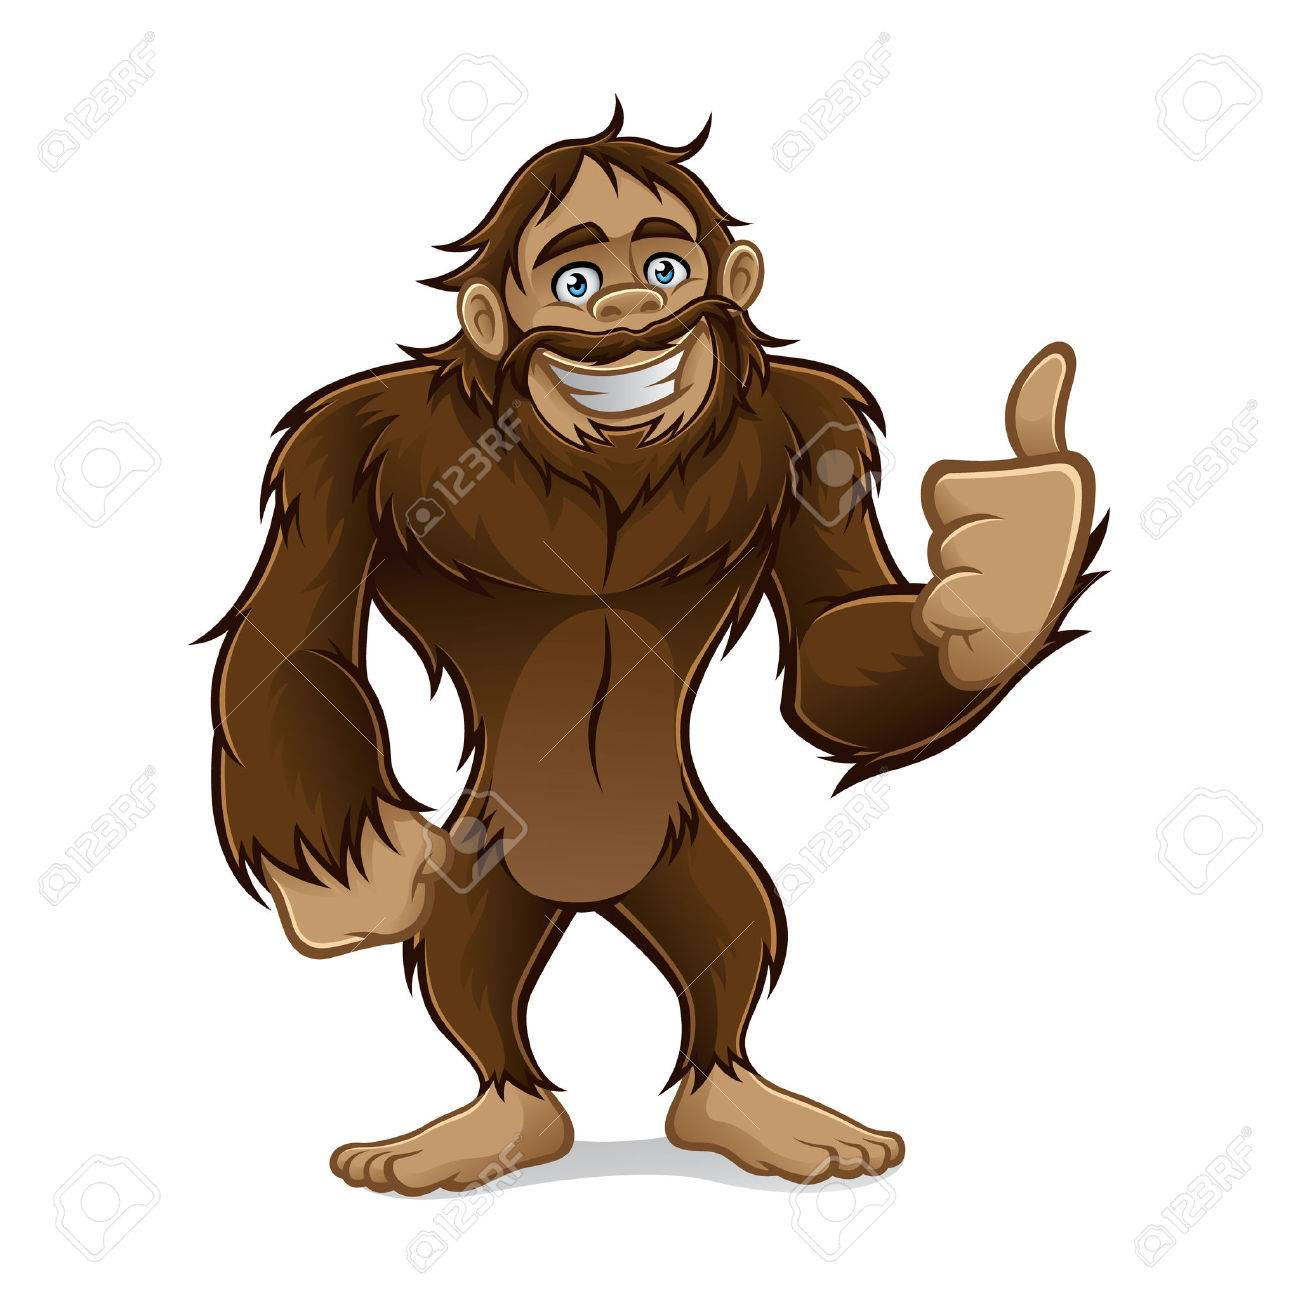 2 789 bigfoot cliparts stock vector and royalty free bigfoot rh 123rf com bigfoot clipart free bigfoot clipart black and white